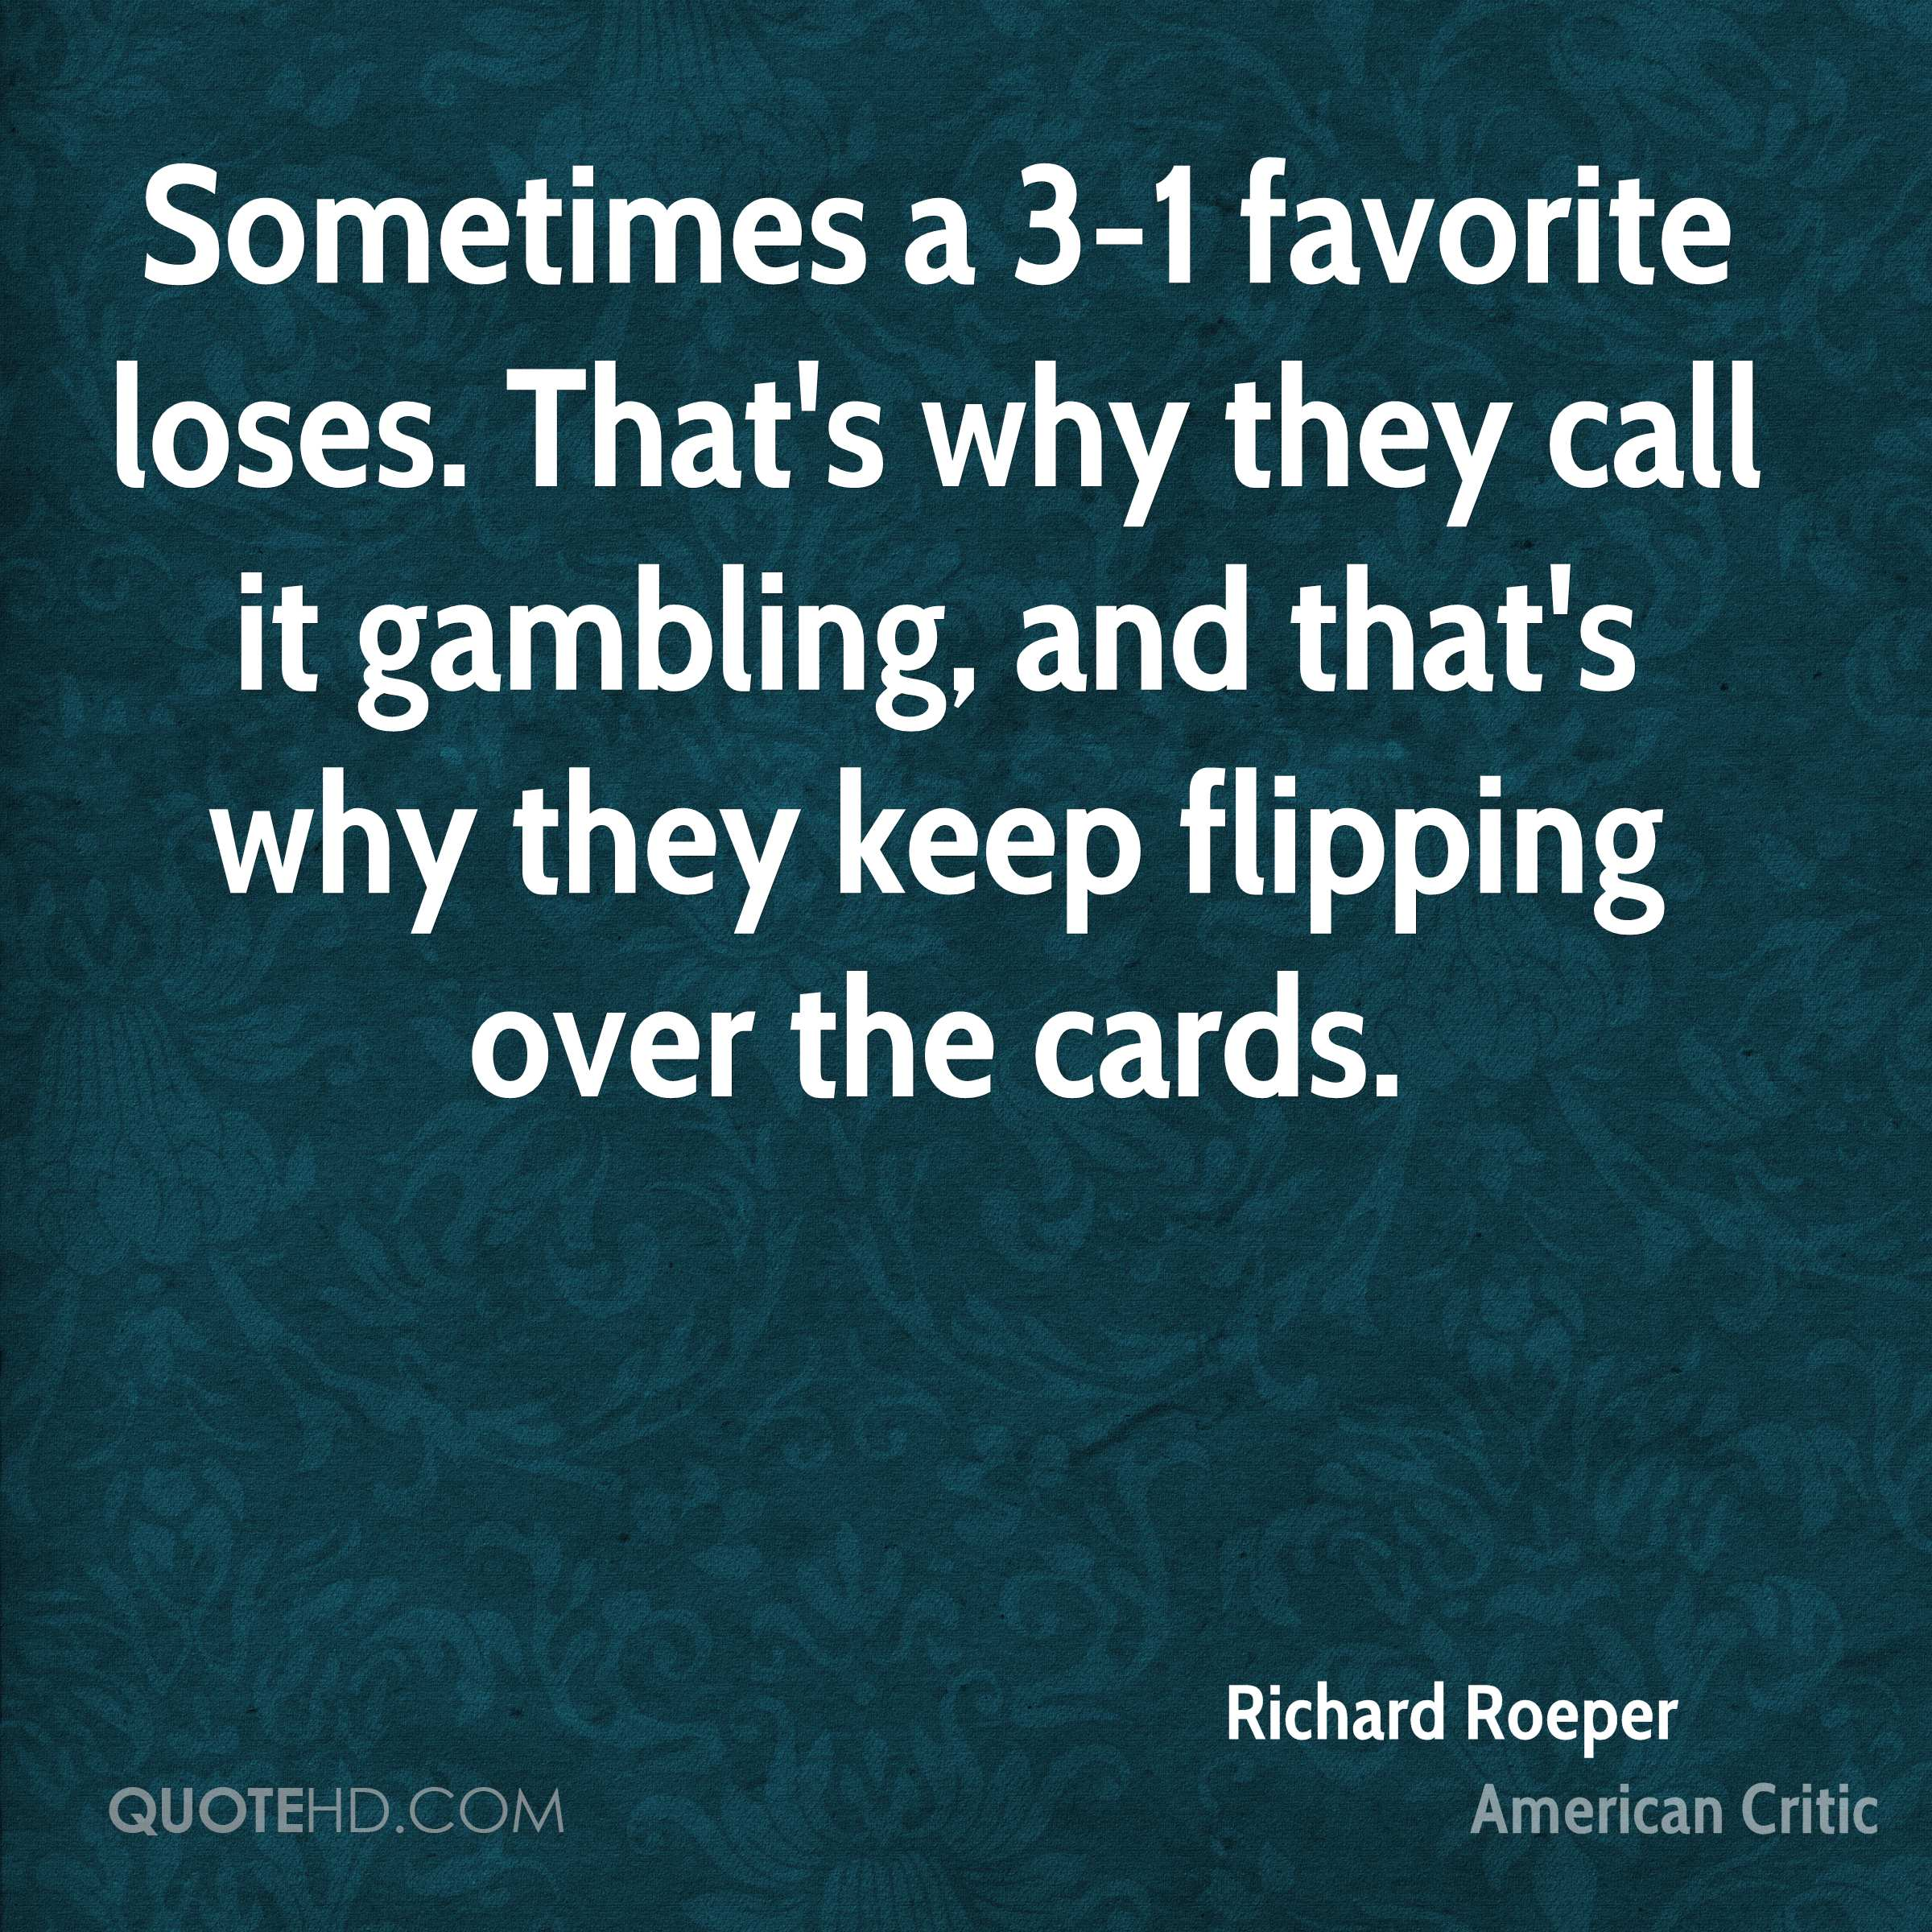 Sometimes a 3-1 favorite loses. That's why they call it gambling, and that's why they keep flipping over the cards.